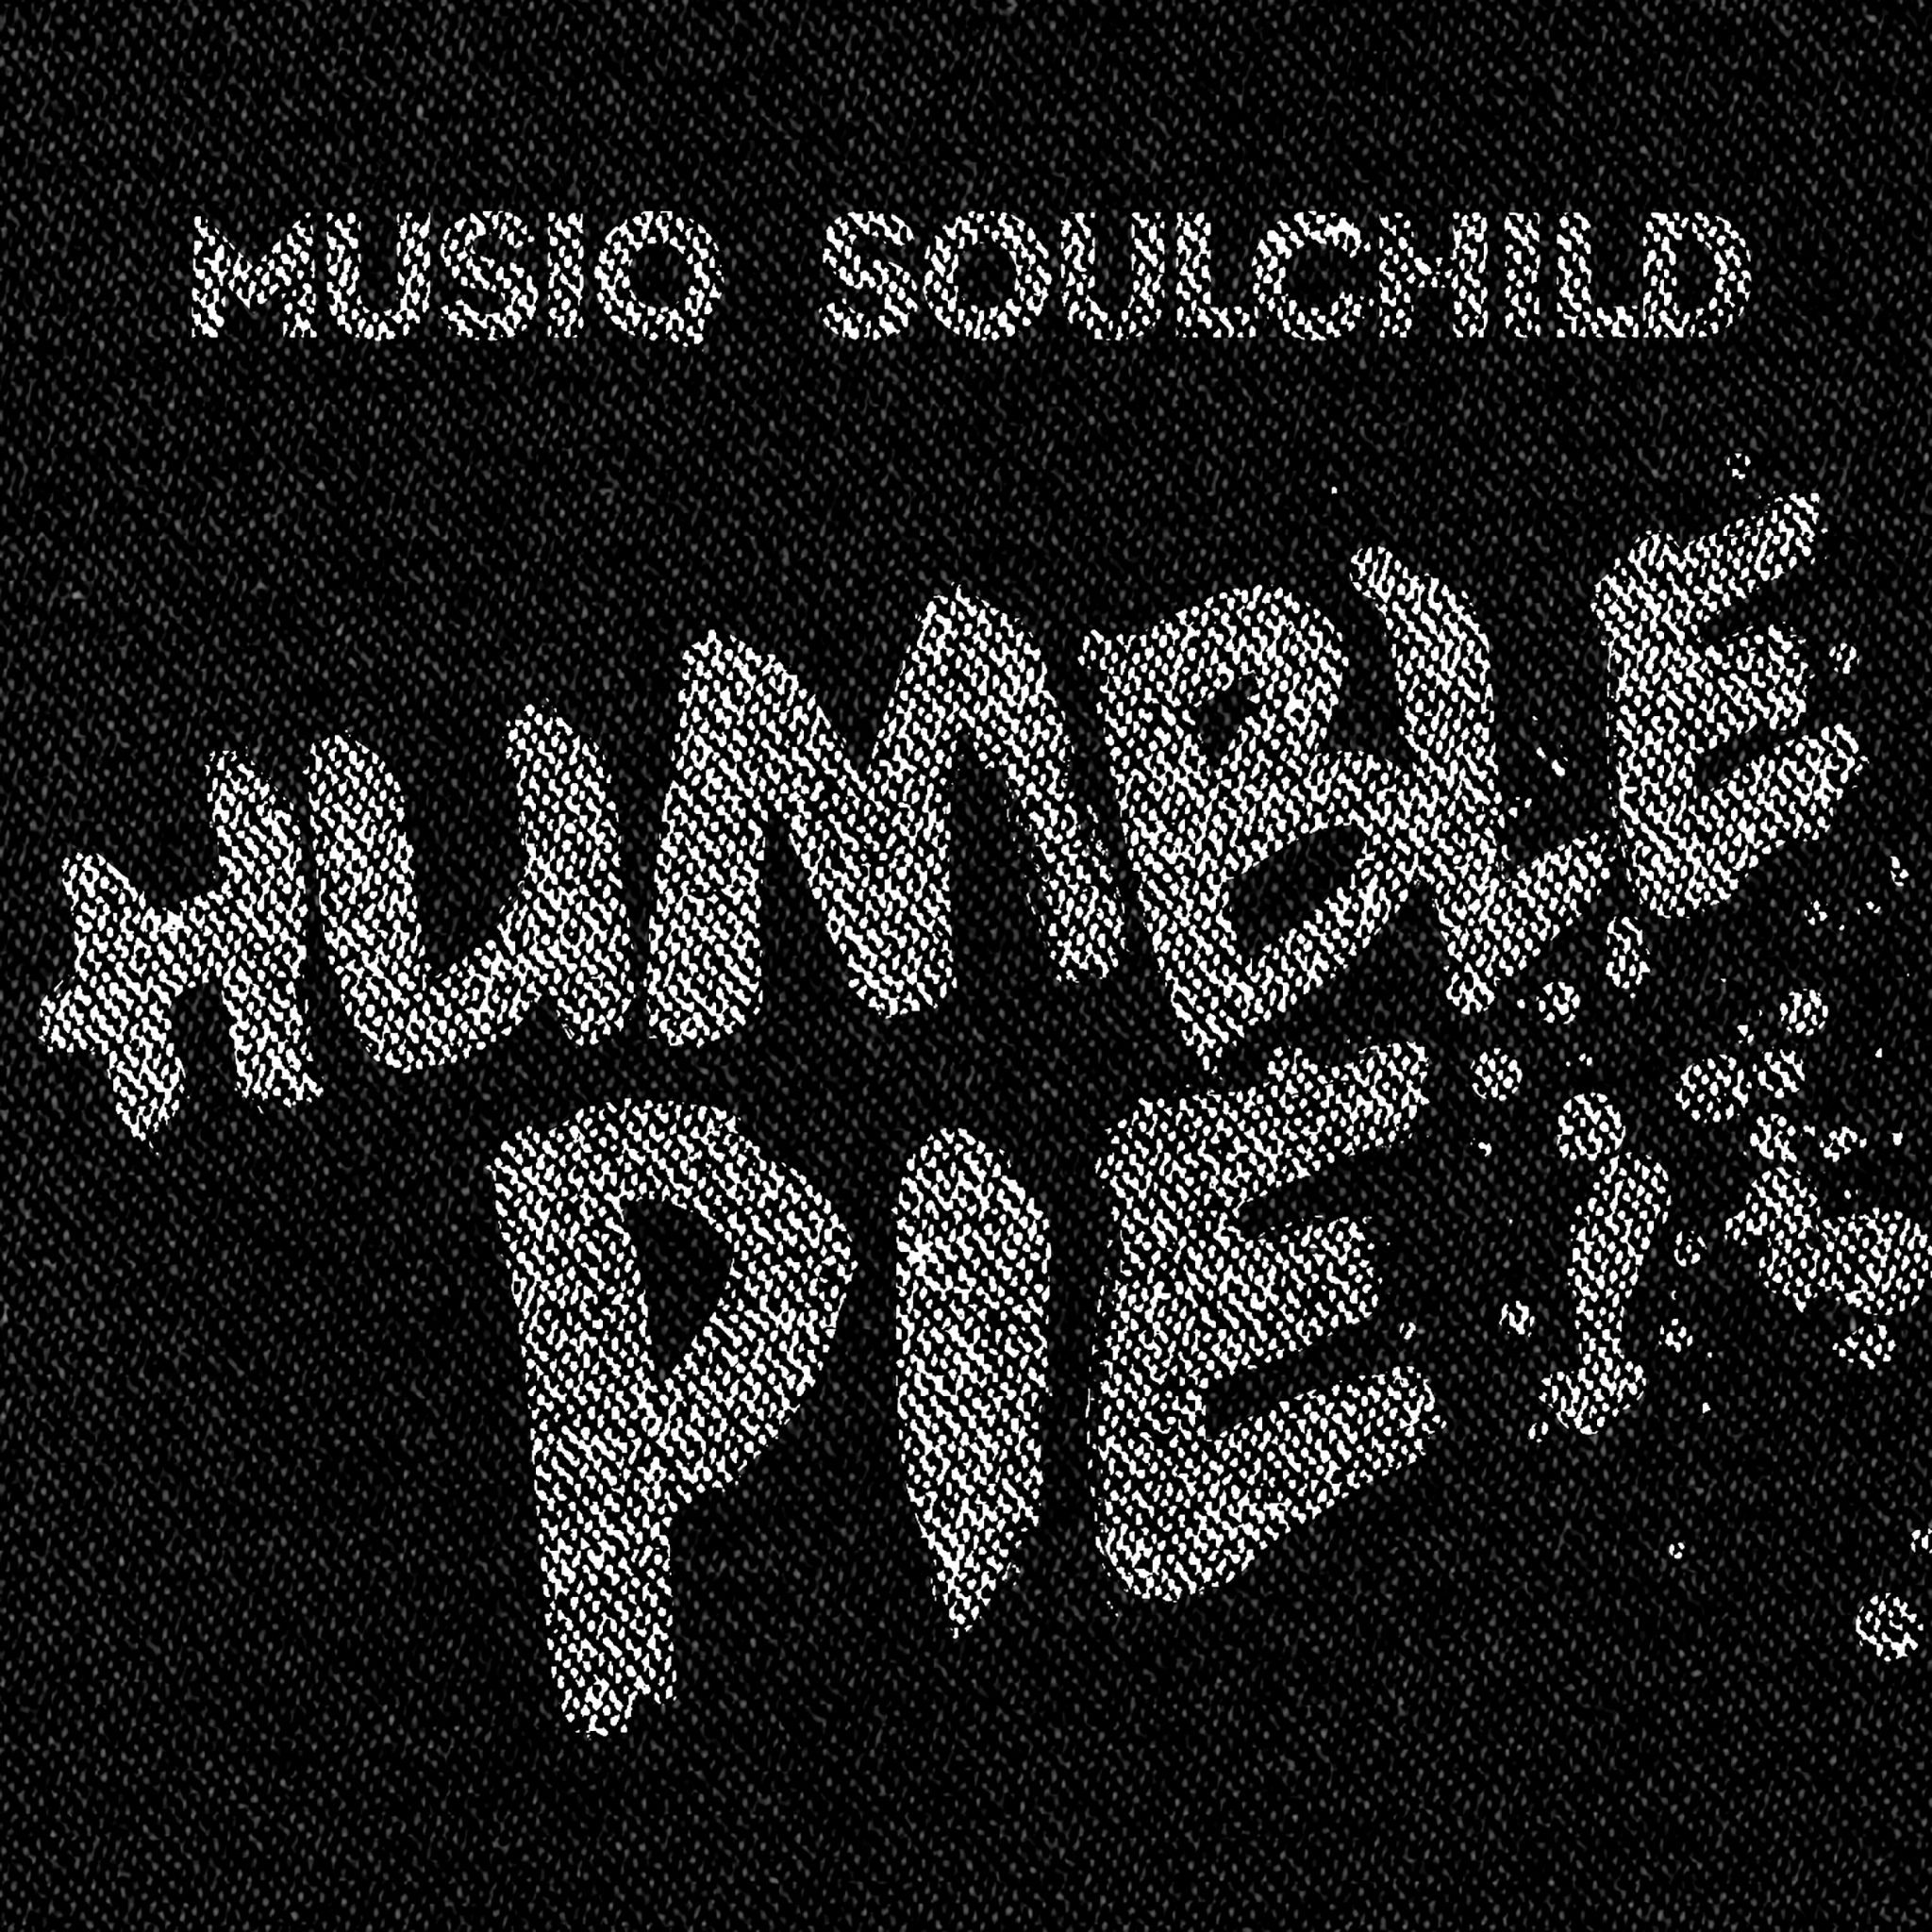 Musiq Soulchild Humble Pie Single Cover